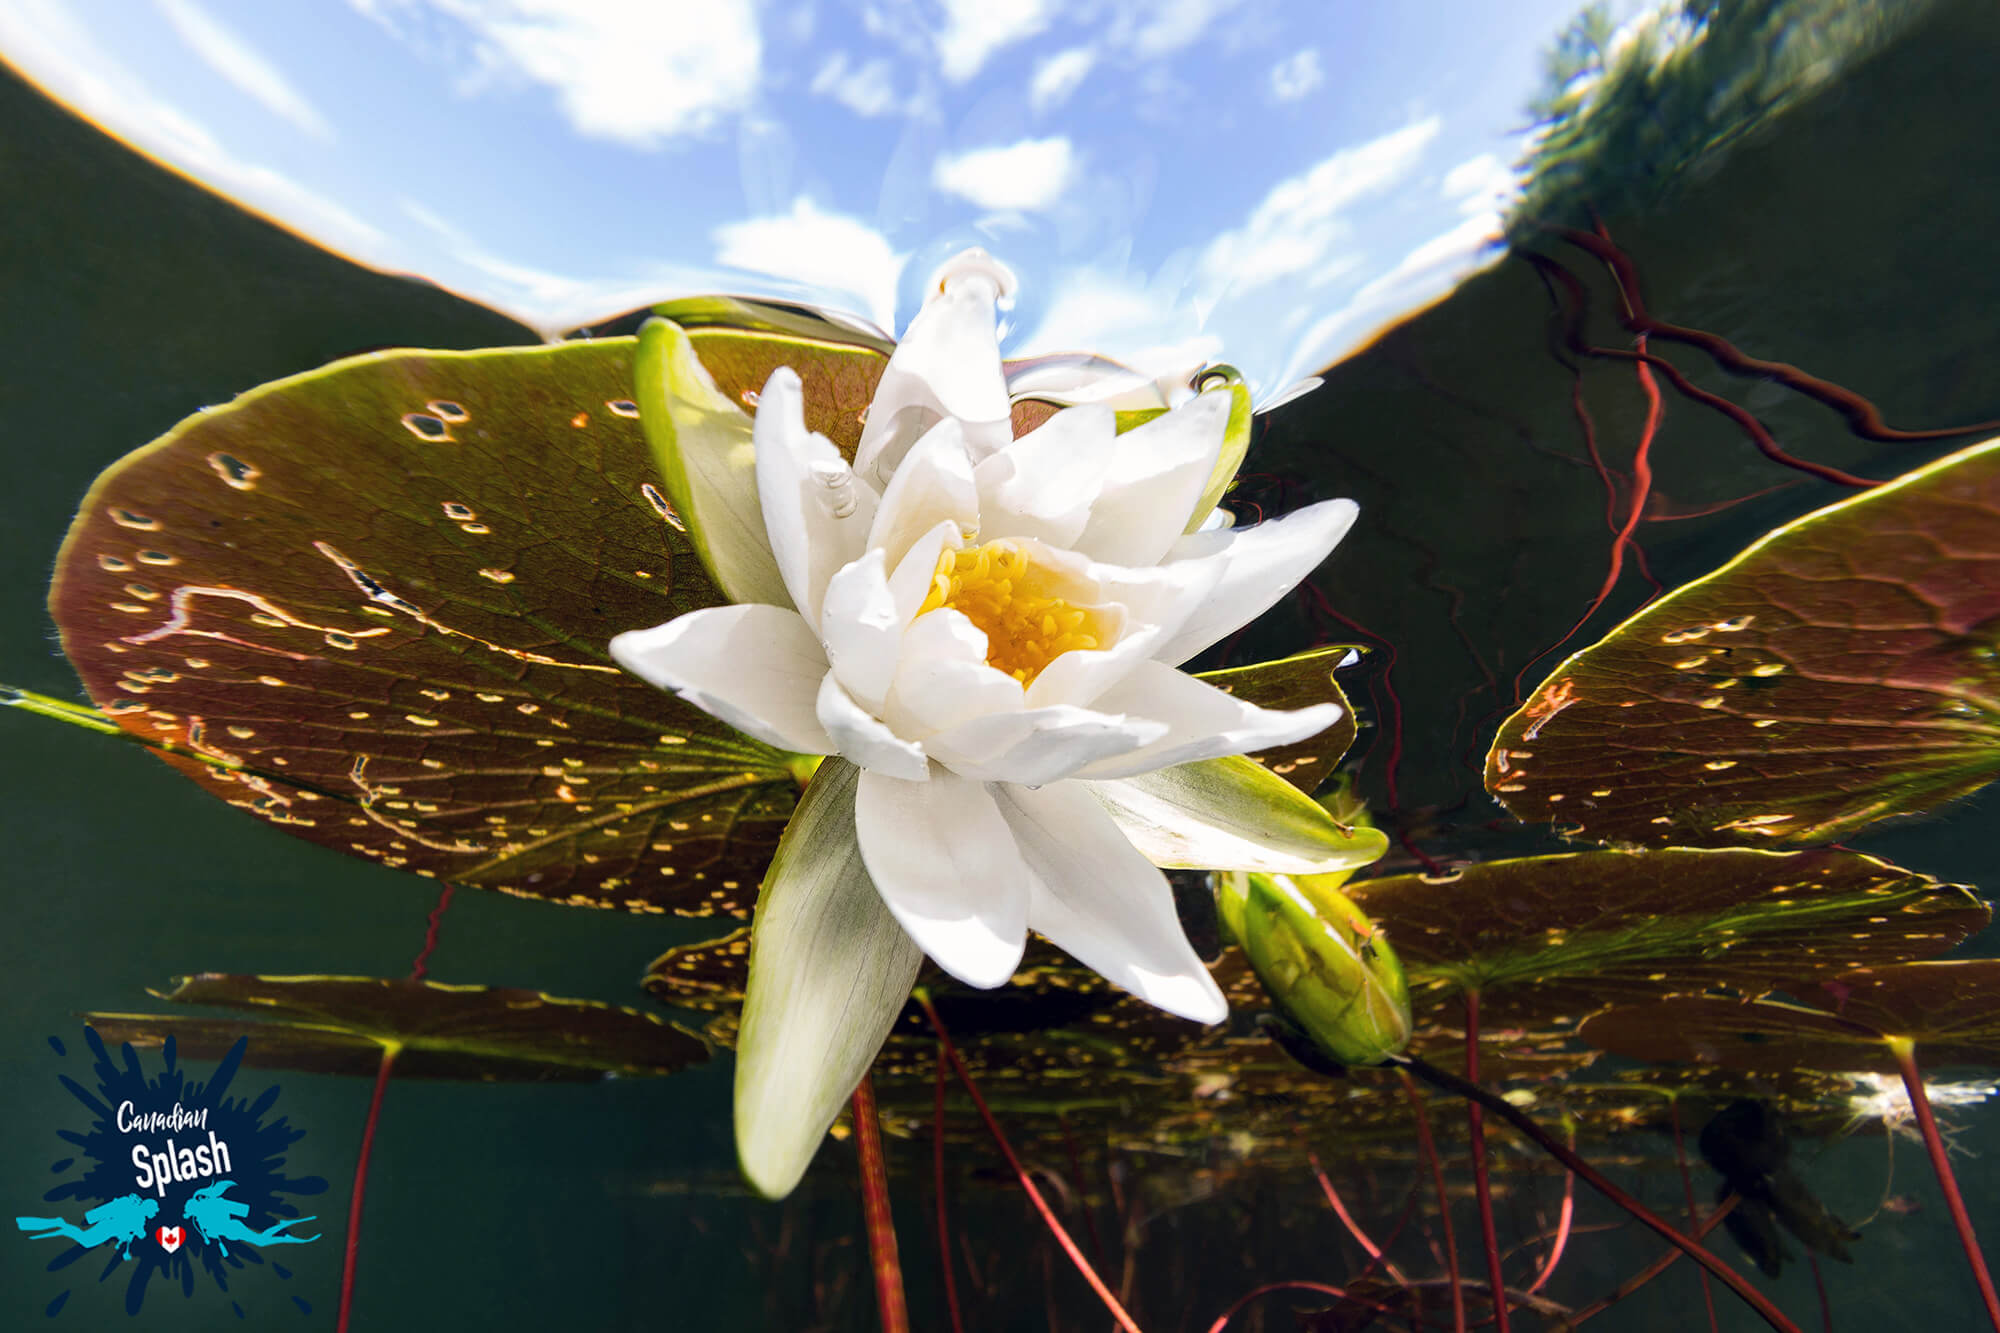 Scuba Diving in Ontario and Finding a Water Lily